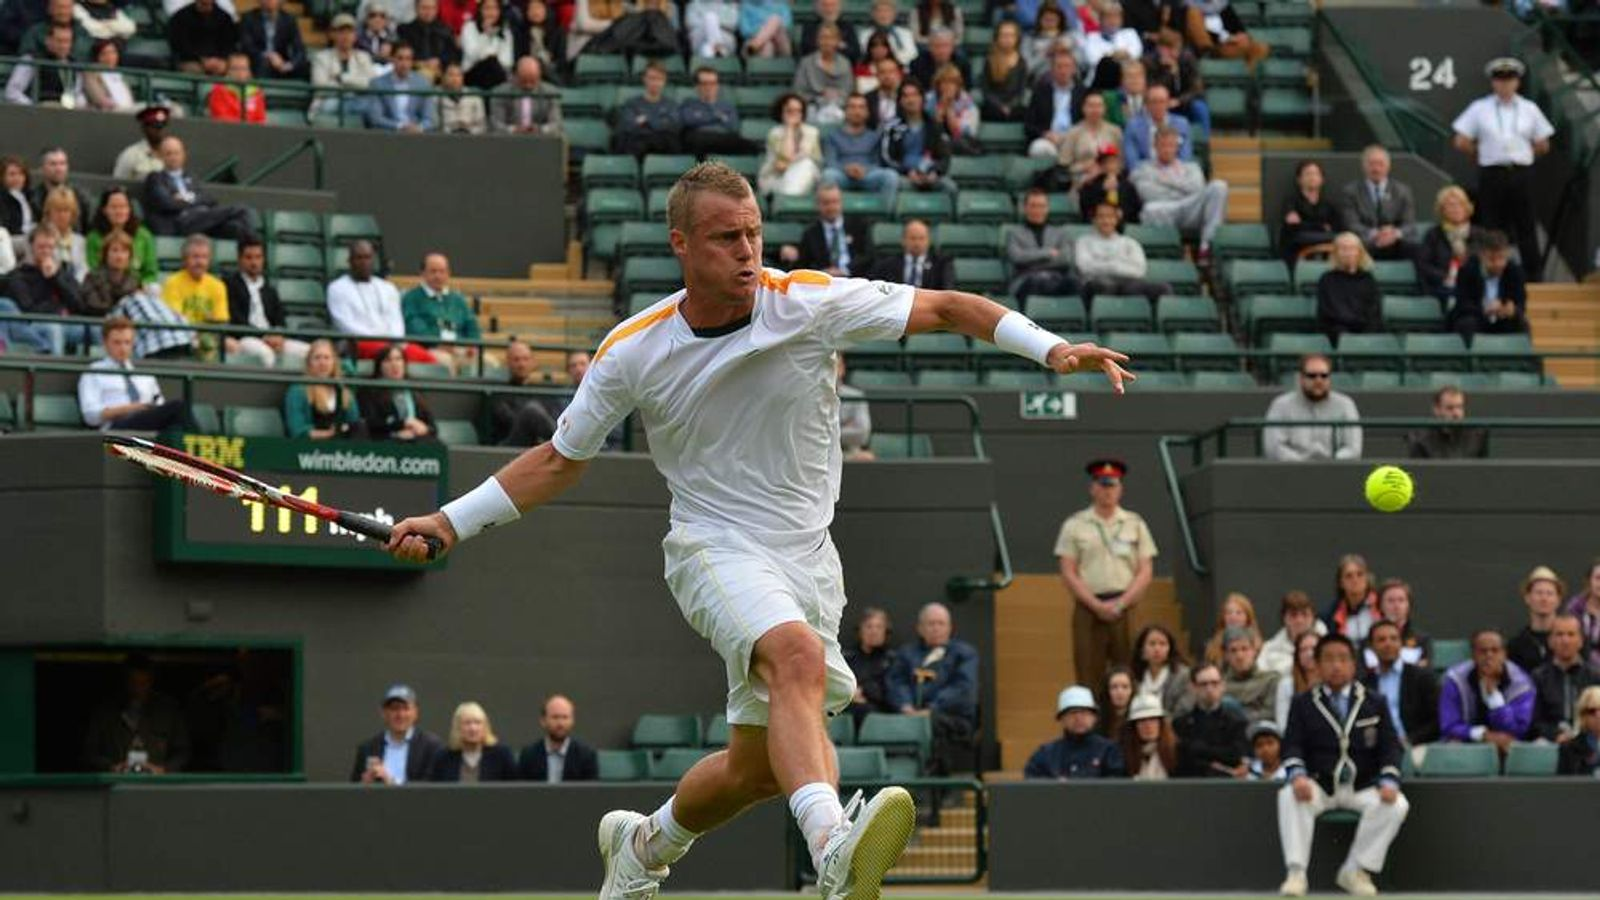 Australia's Lleyton Hewitt returns against Switzerland's Stanislas Wawrinka during their men's first round match on day one of the 2013 Wimbledon Championships